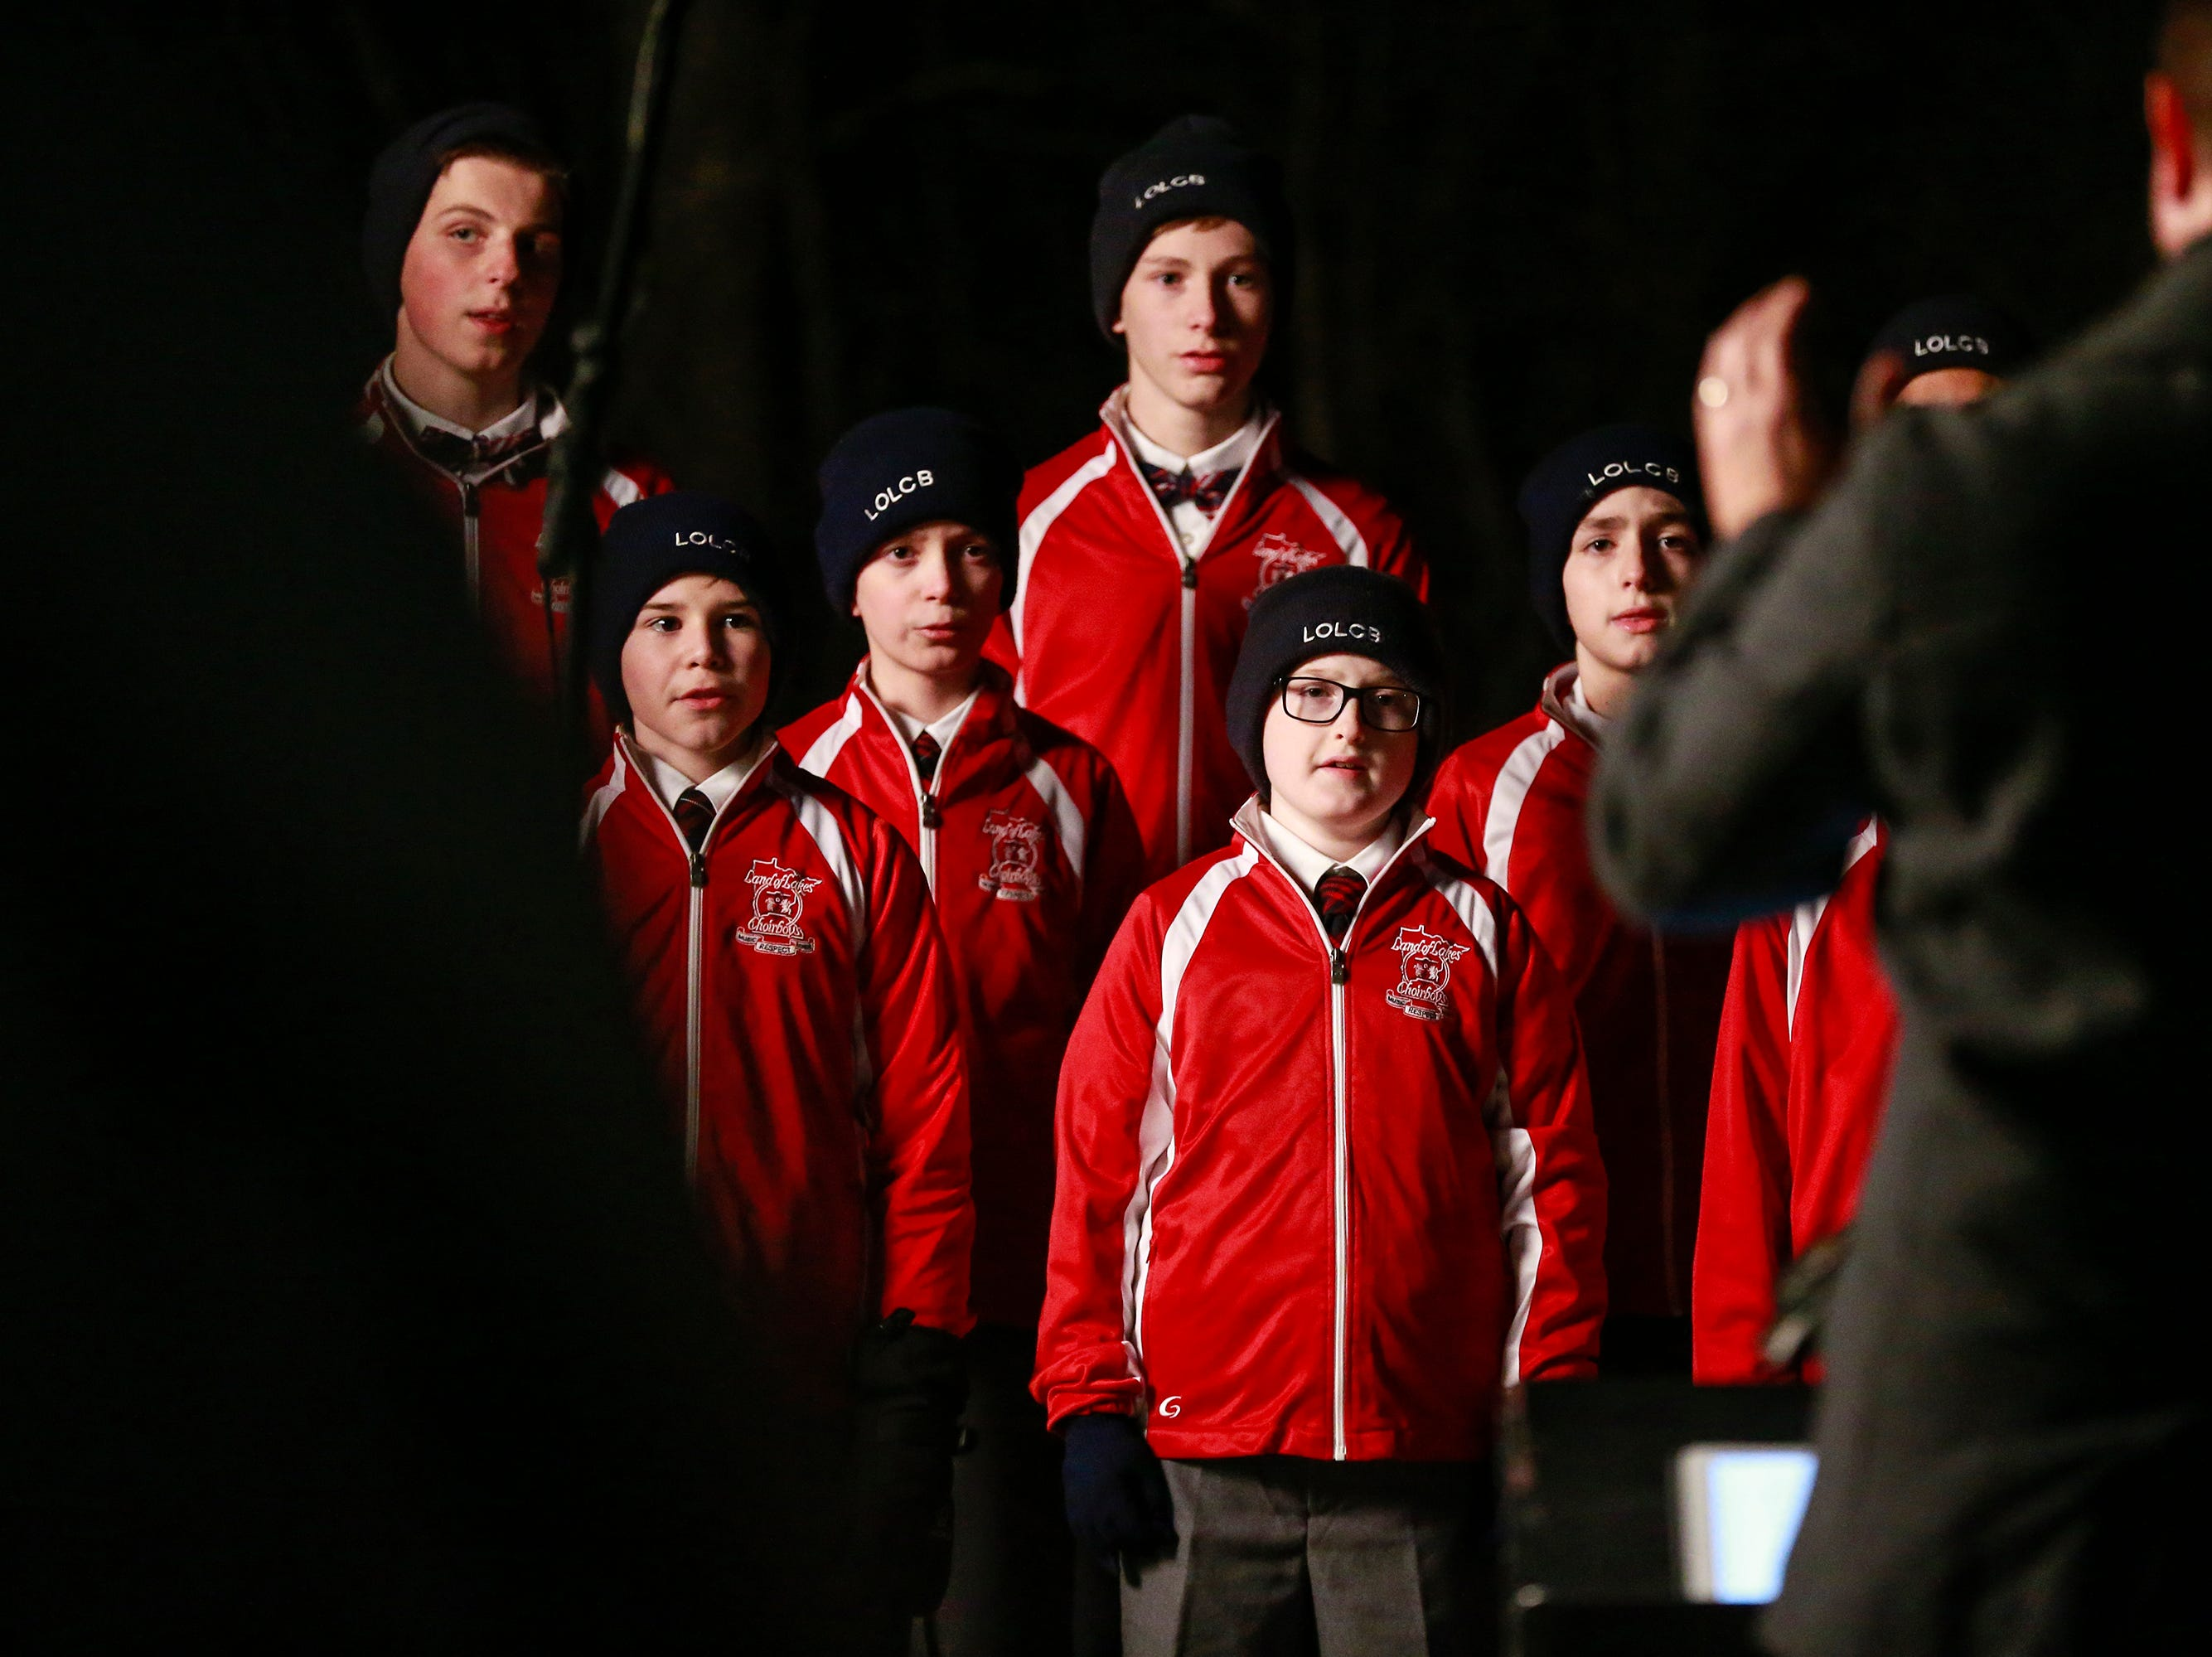 The Lakes Choir Boys performs during the Tree of Hope for Jayme Closs ceremony Wednesday, Dec. 12, 2018, outside of Riverview Middle School in Barron, Wisc. T'xer Zhon Kha/USA TODAY NETWORK-Wisconsin